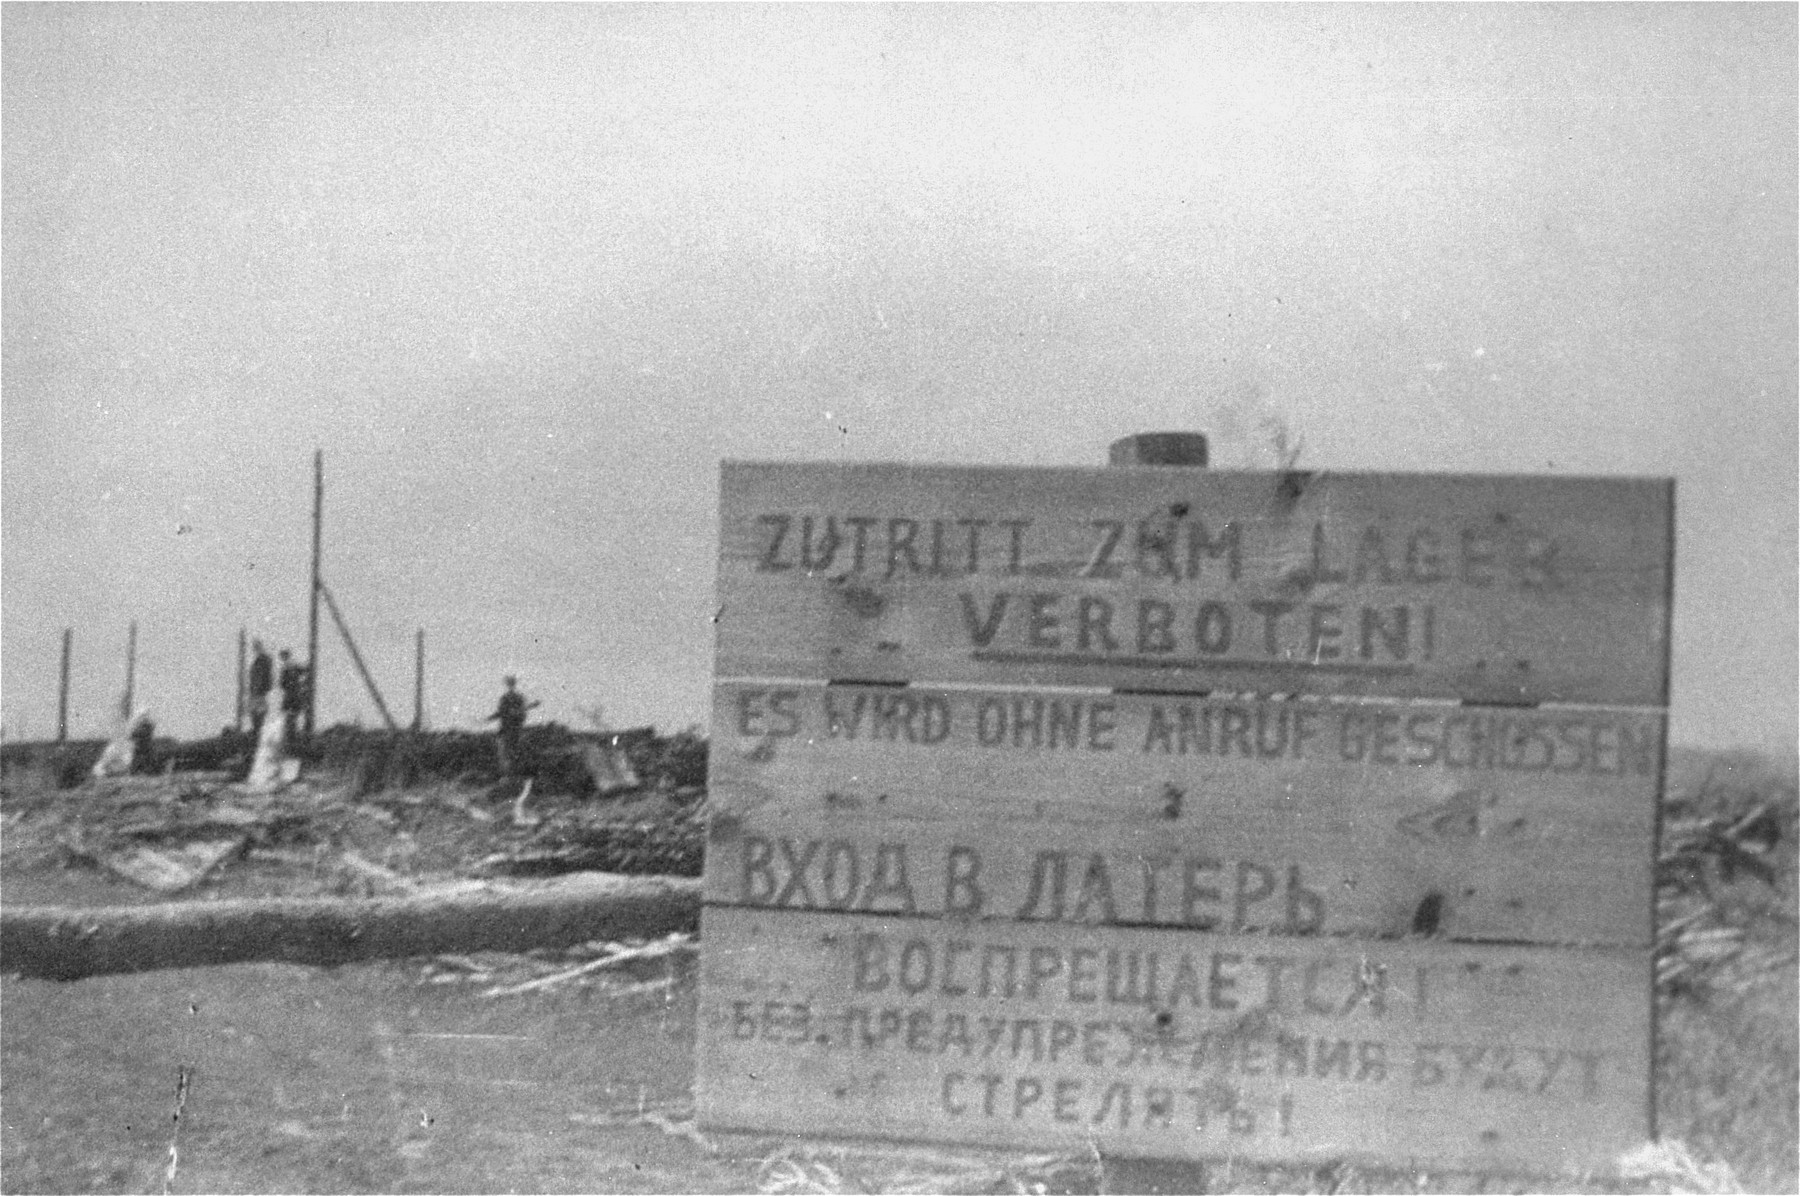 A sign at the entrance to the Maly Trostinets concentration camp warns that trespassers will be shot without warning.